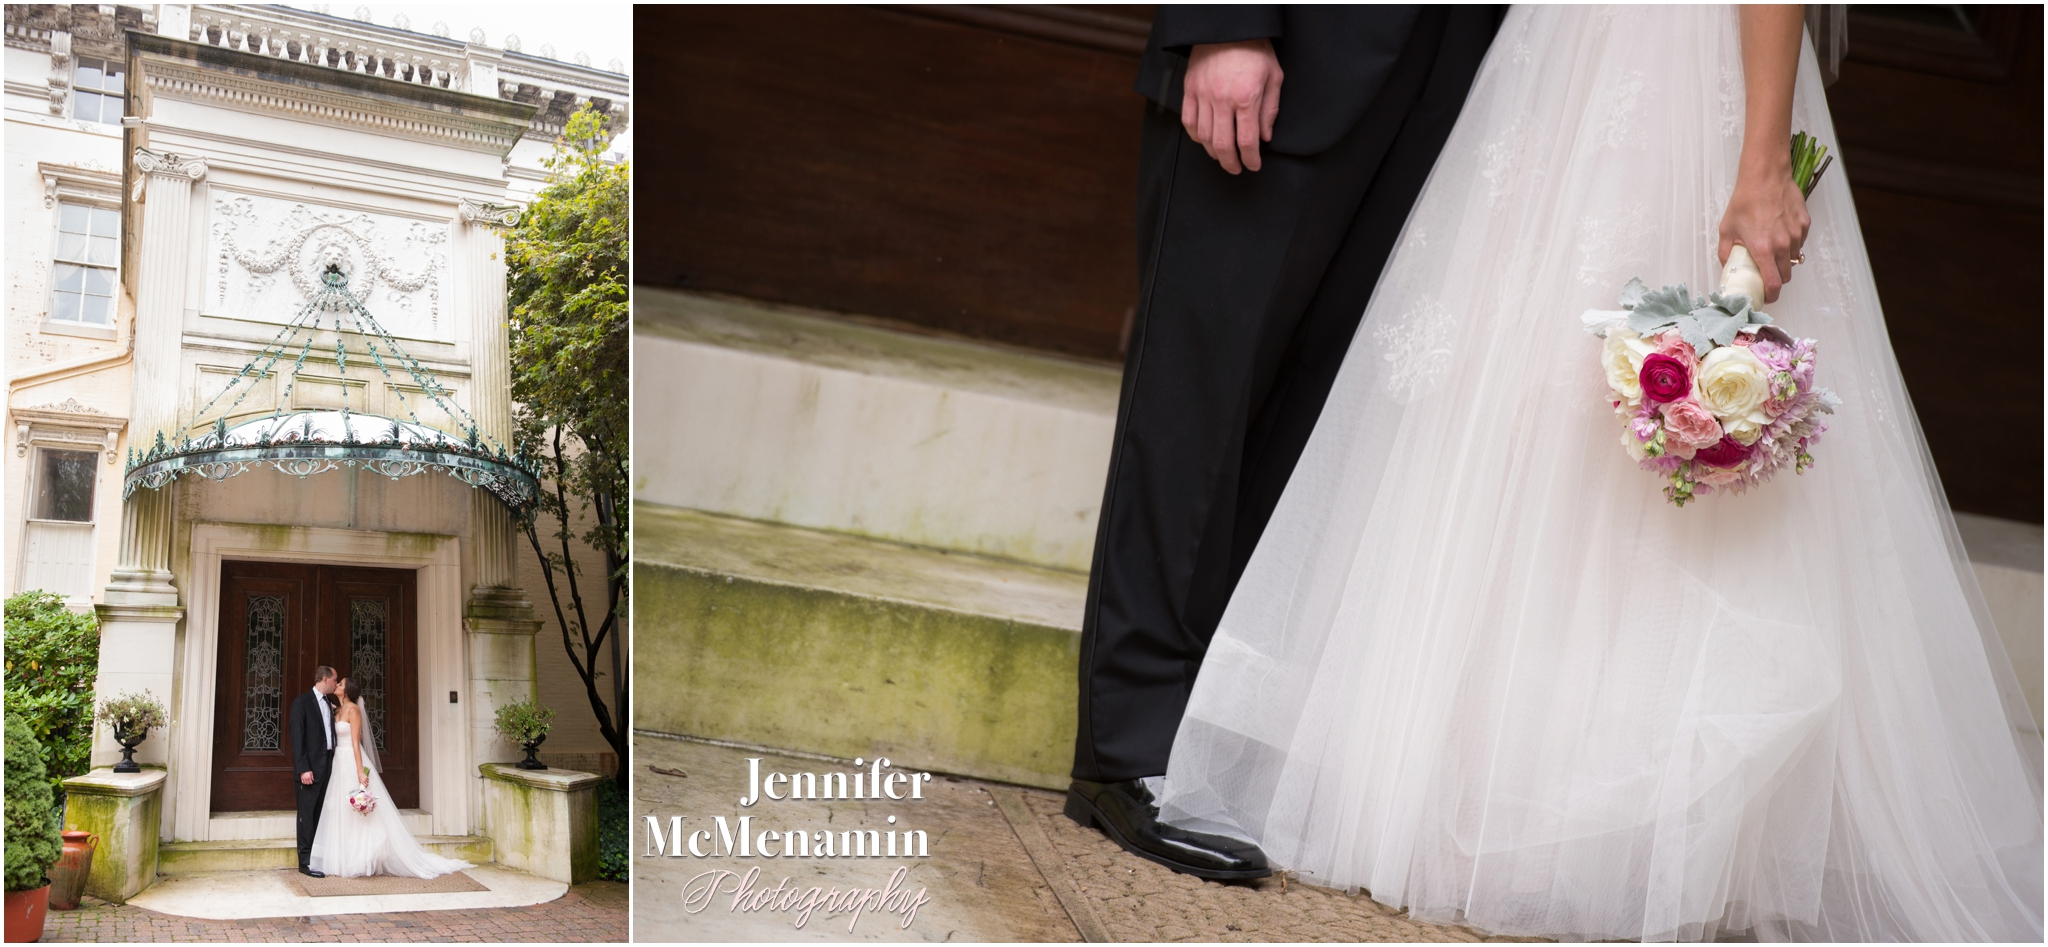 0045-BlumWilliams_01717-0324_JenniferMcMenaminPhotography_Evergreen-Museum-Carriage-House_Baltimore-wedding-photography_Baltimore-wedding-photographer